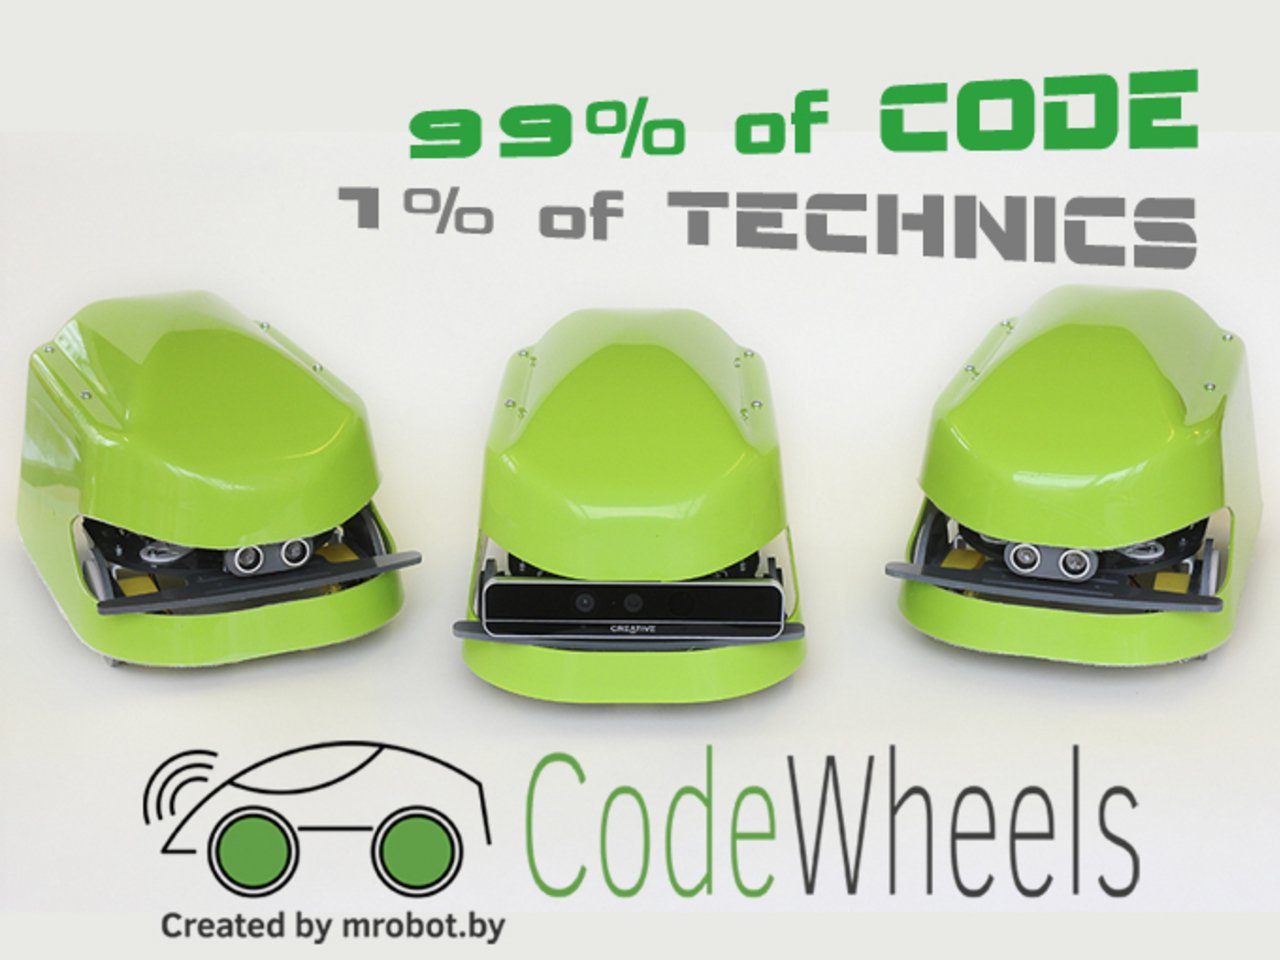 CodeWheels – Real code, real robot racing powered by Intel Curie!